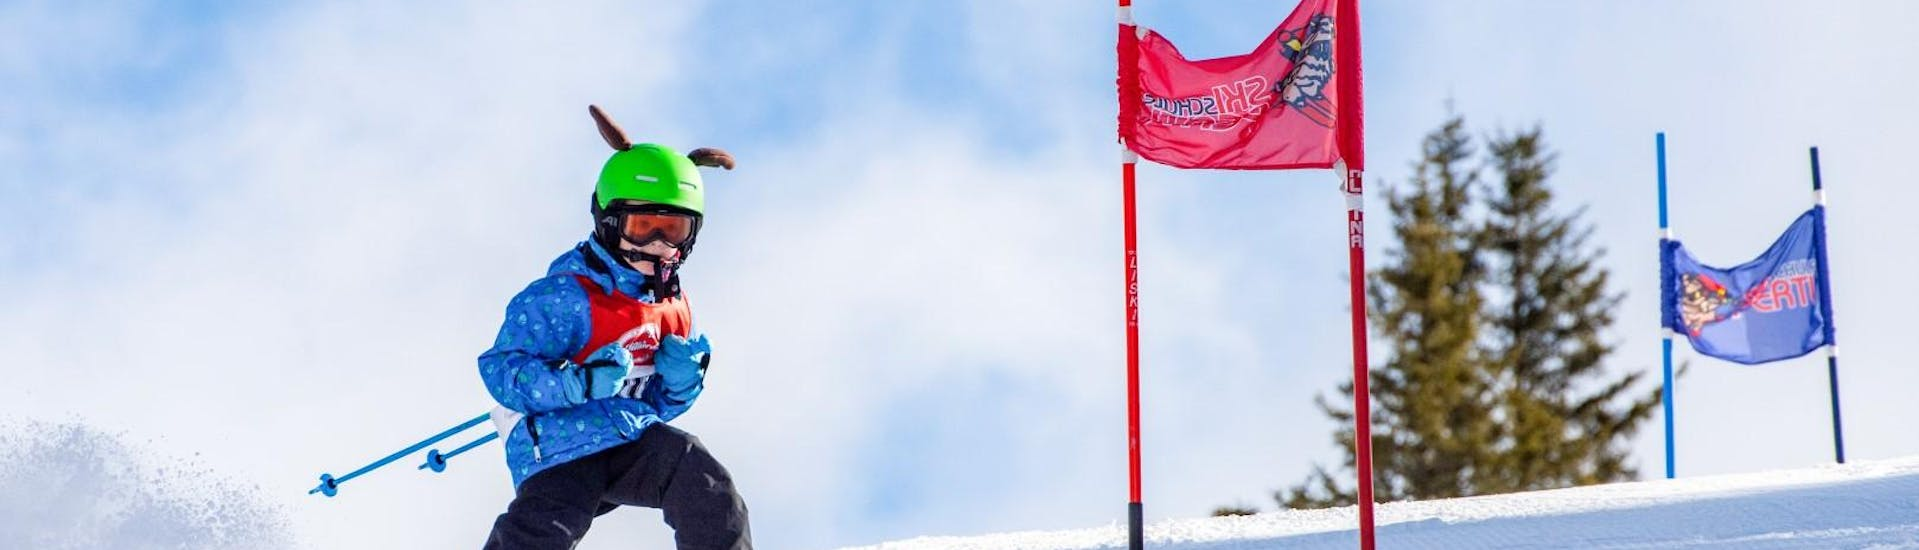 Private Ski Lessons for Kids of All Ages with Skischule Pertl Turracher Höhe - Hero image